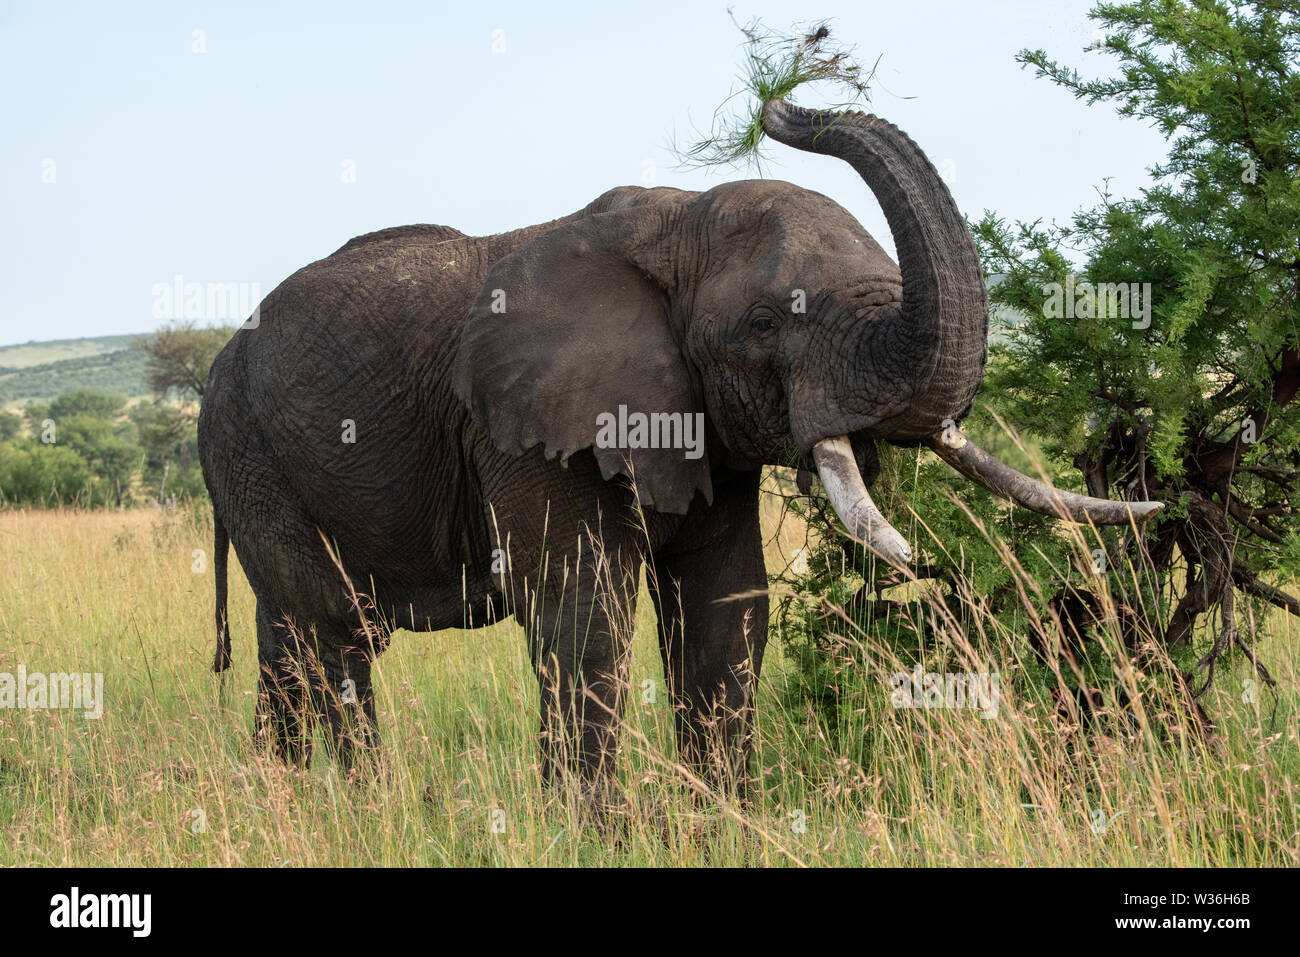 African elephant throws grass upwards with trunk - Stock Image